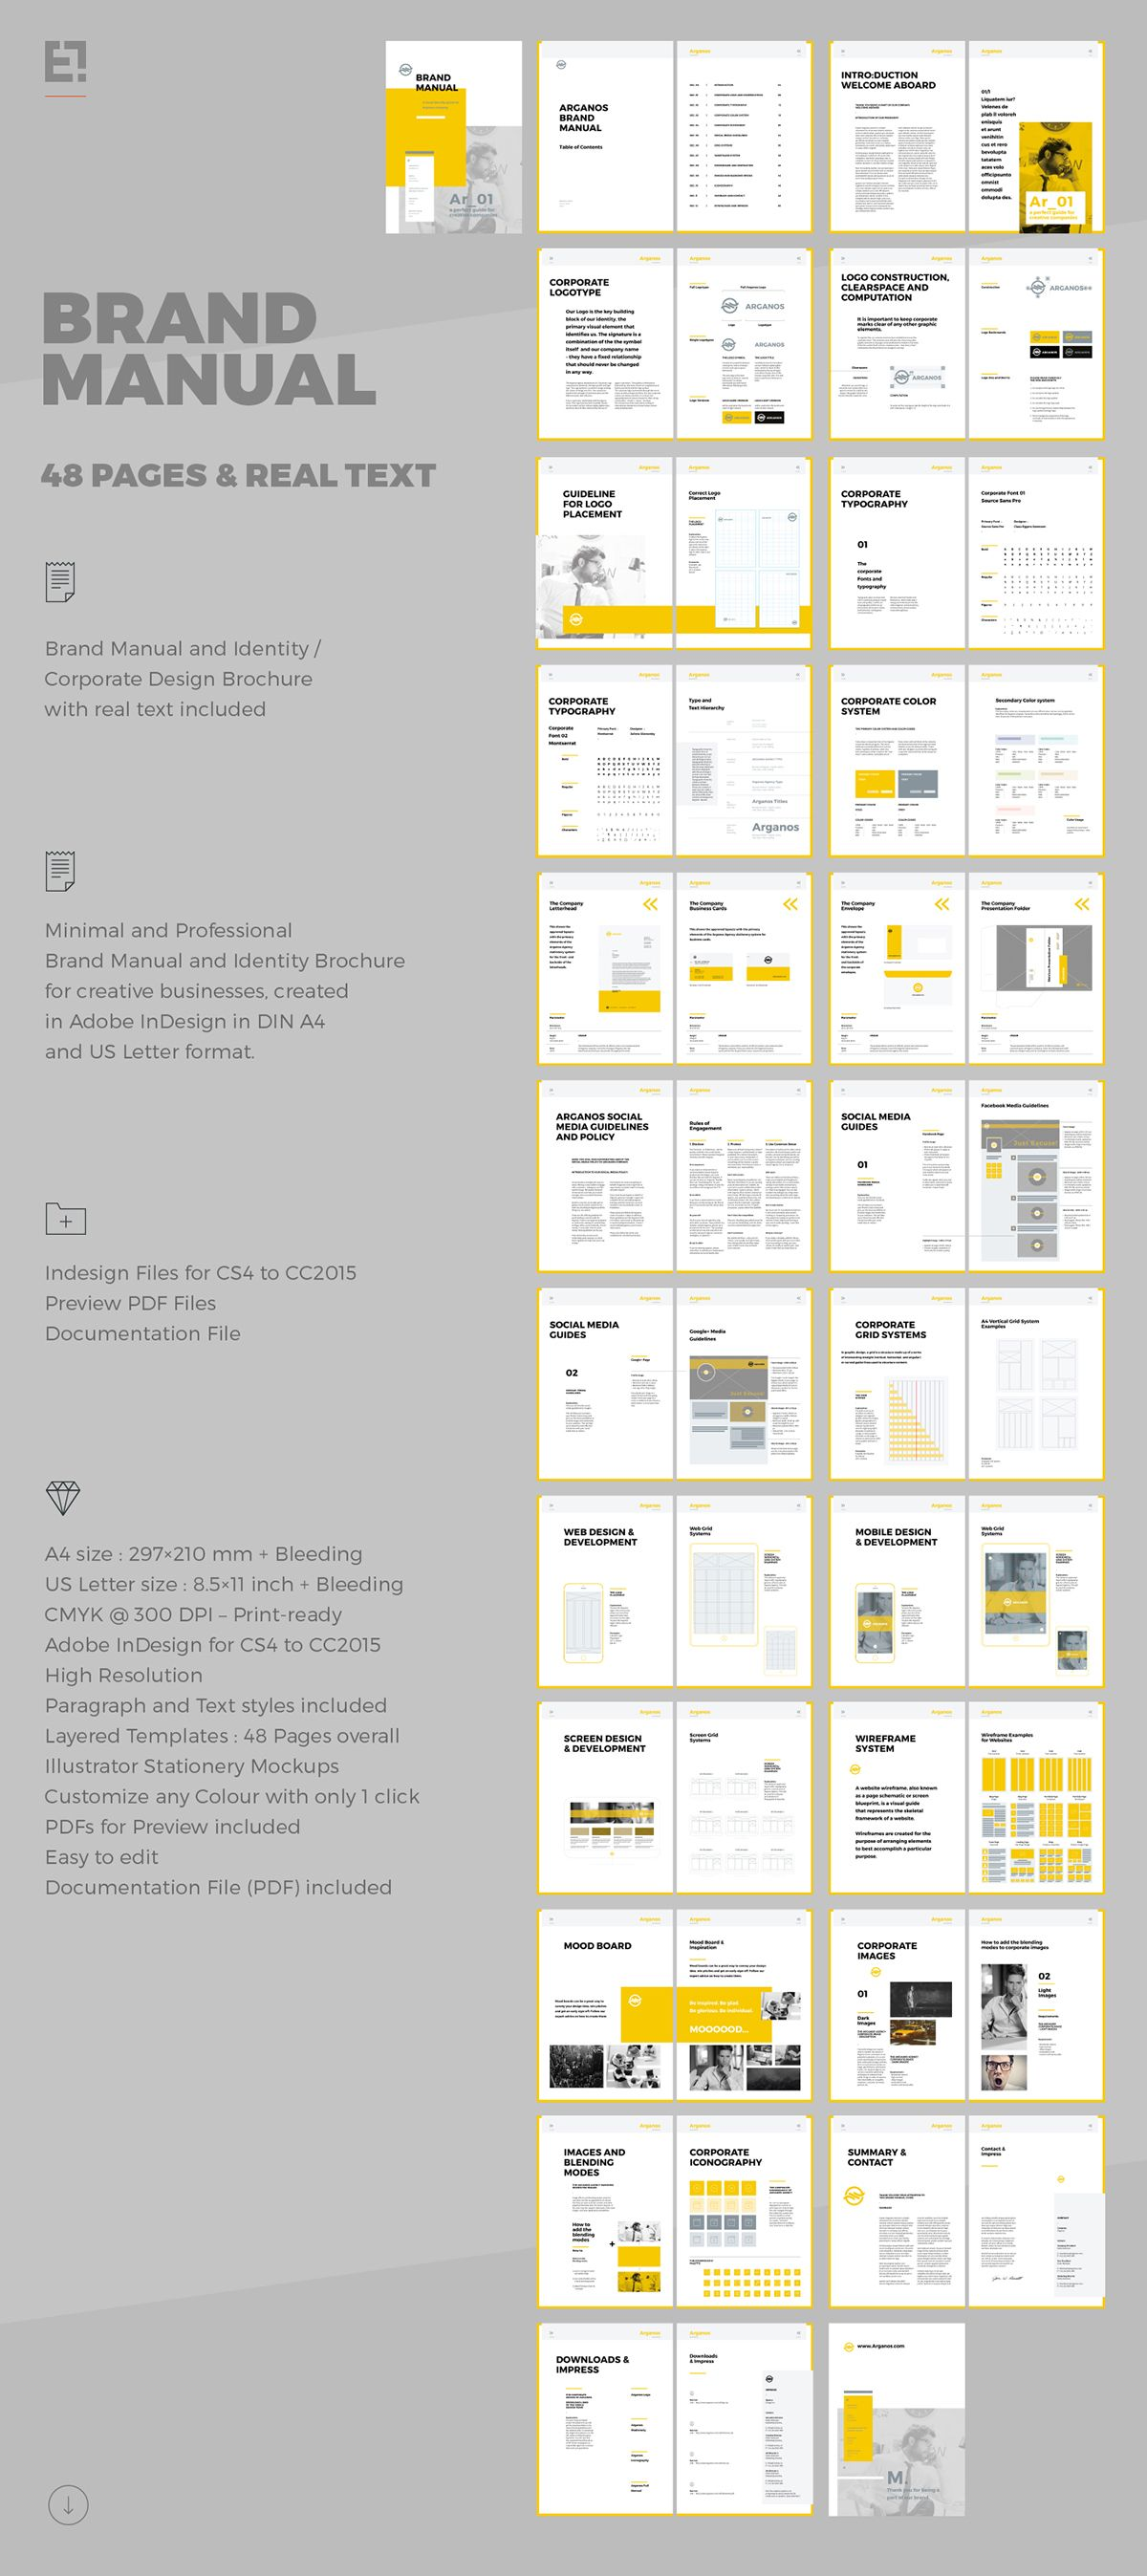 Brand Manual on Behance | mockups | Pinterest